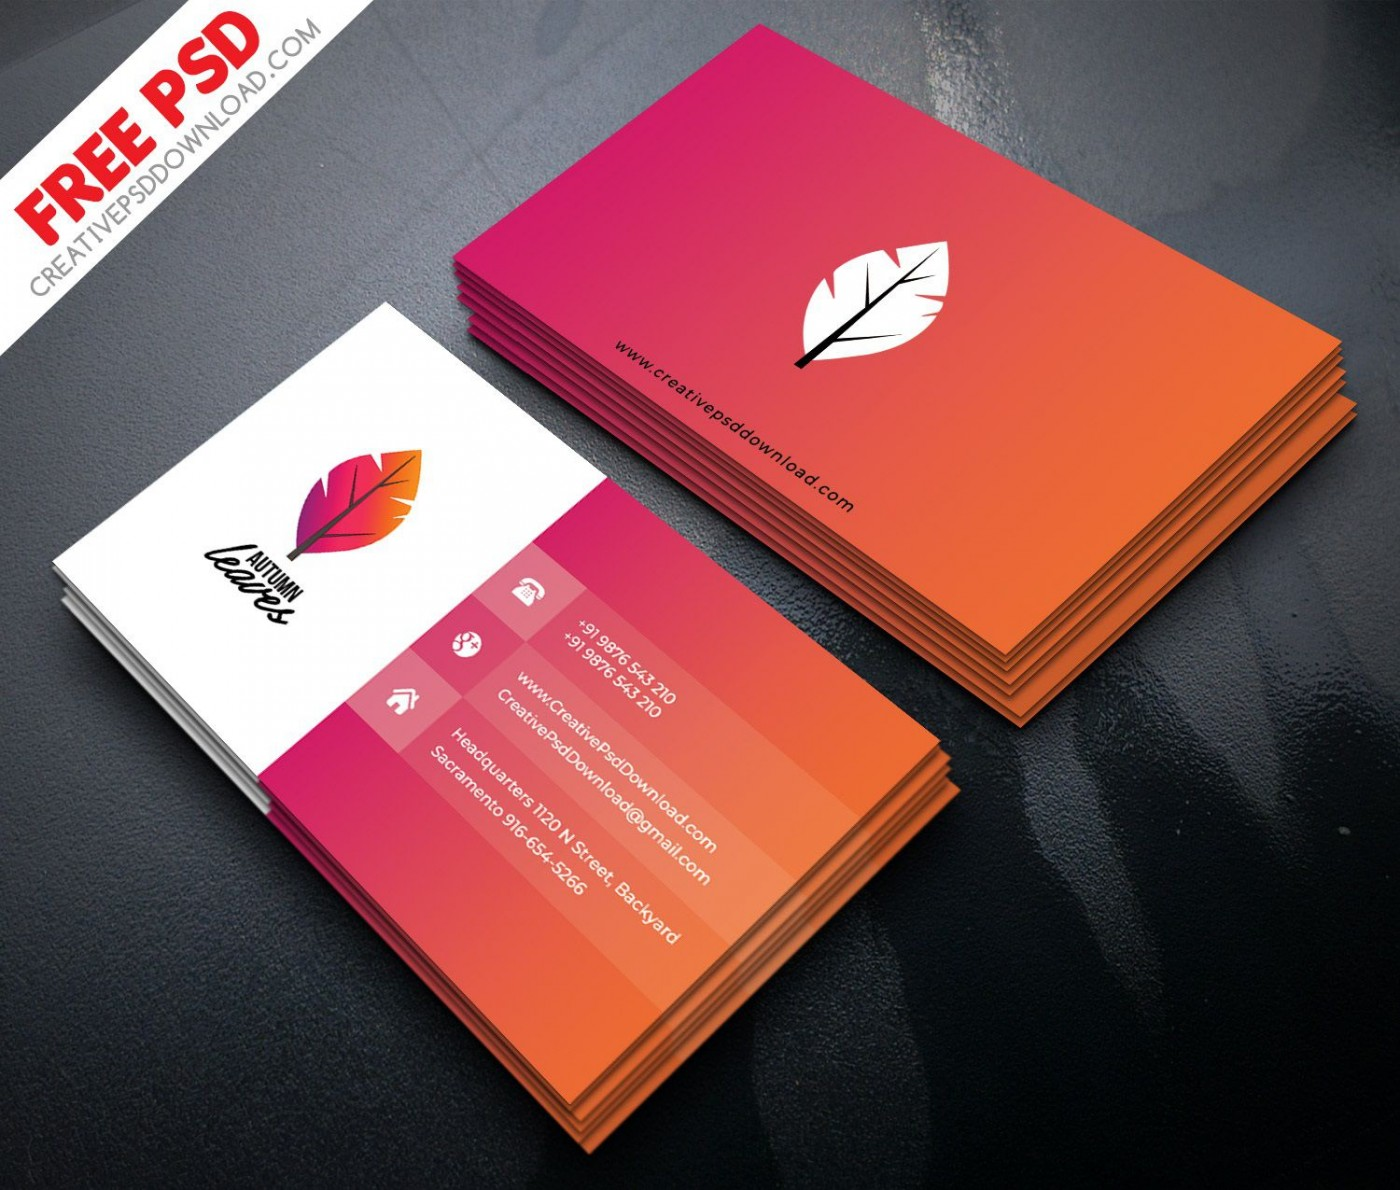 008 Imposing Free Photoshop Busines Card Template Download Highest Clarity  Adobe Psd Visiting Design1400